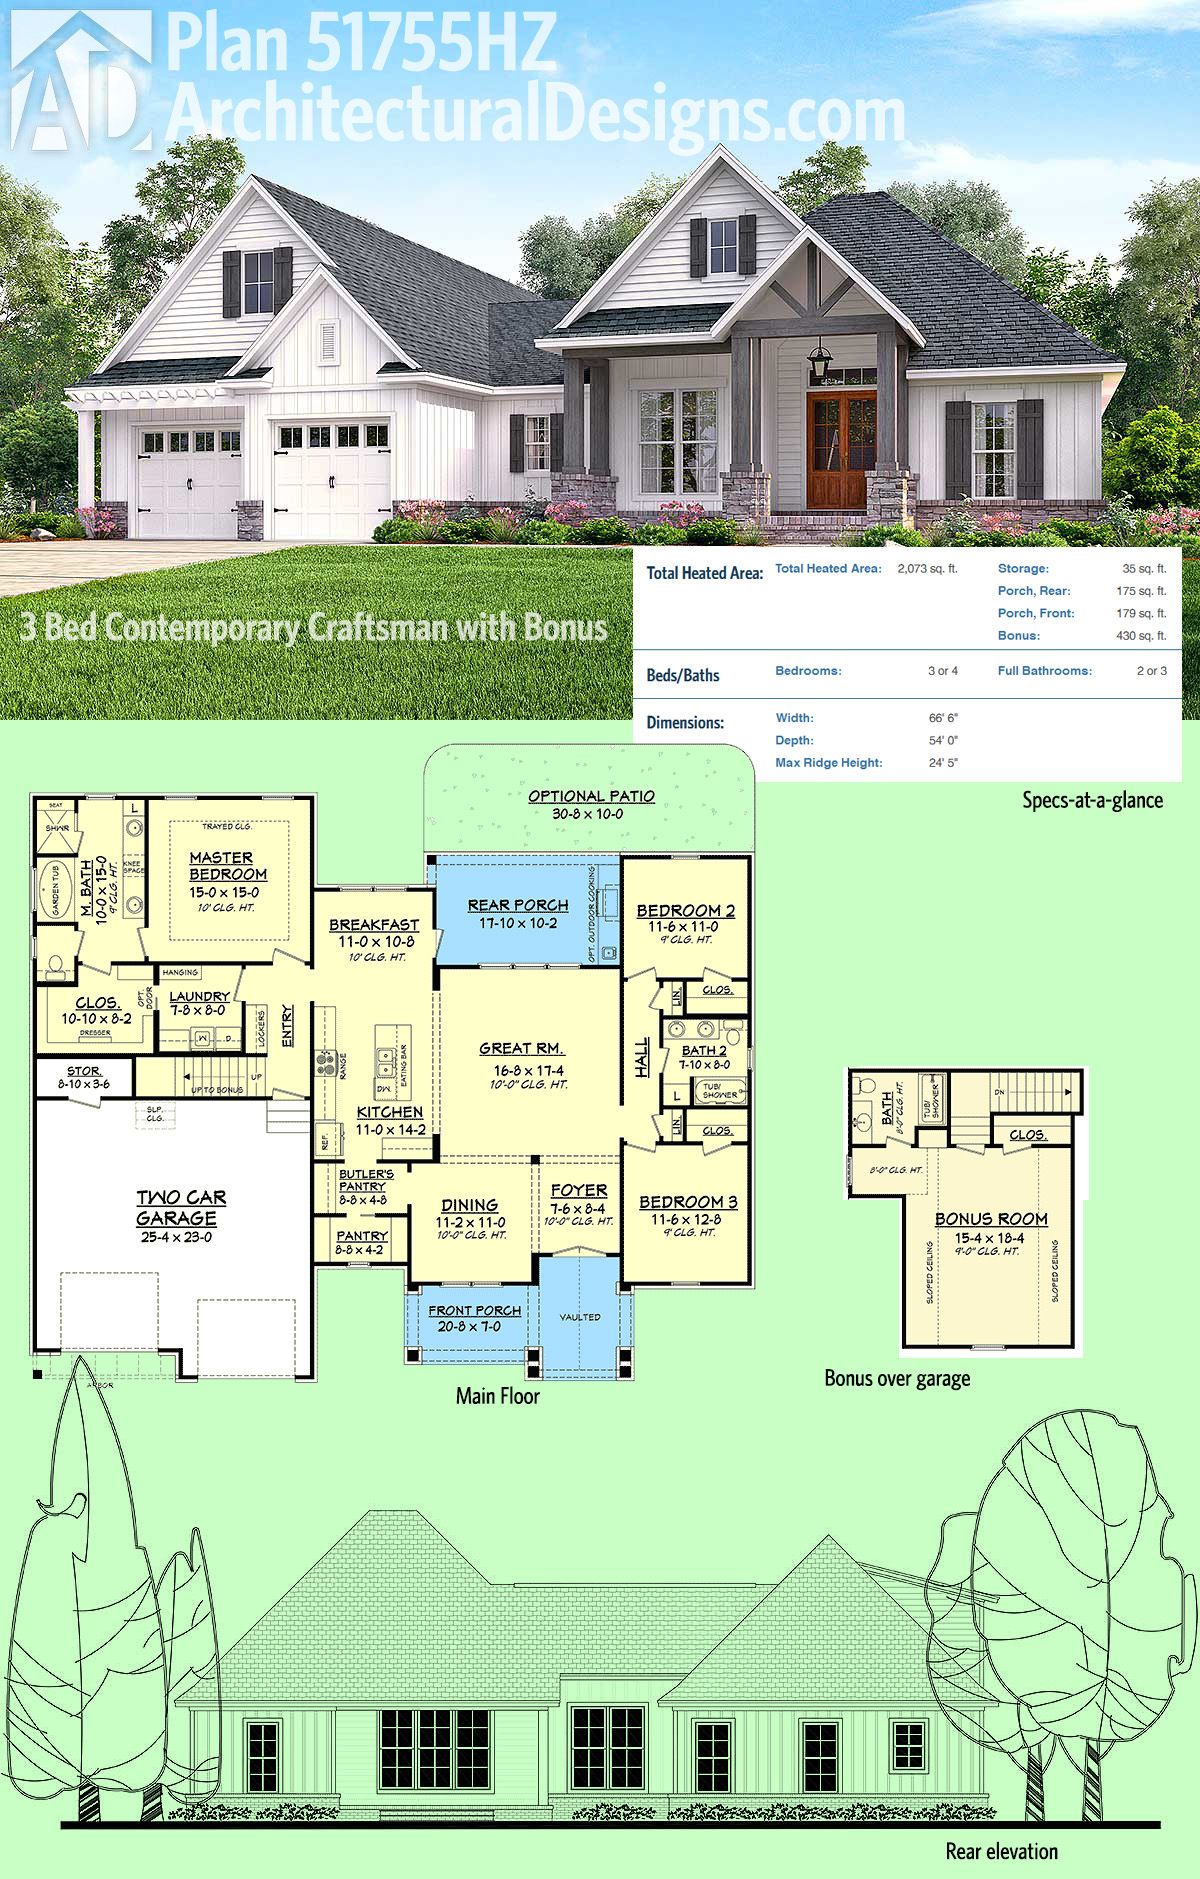 Plan 51755HZ 3 Bed Contemporary Craftsman with Bonus Over Garage